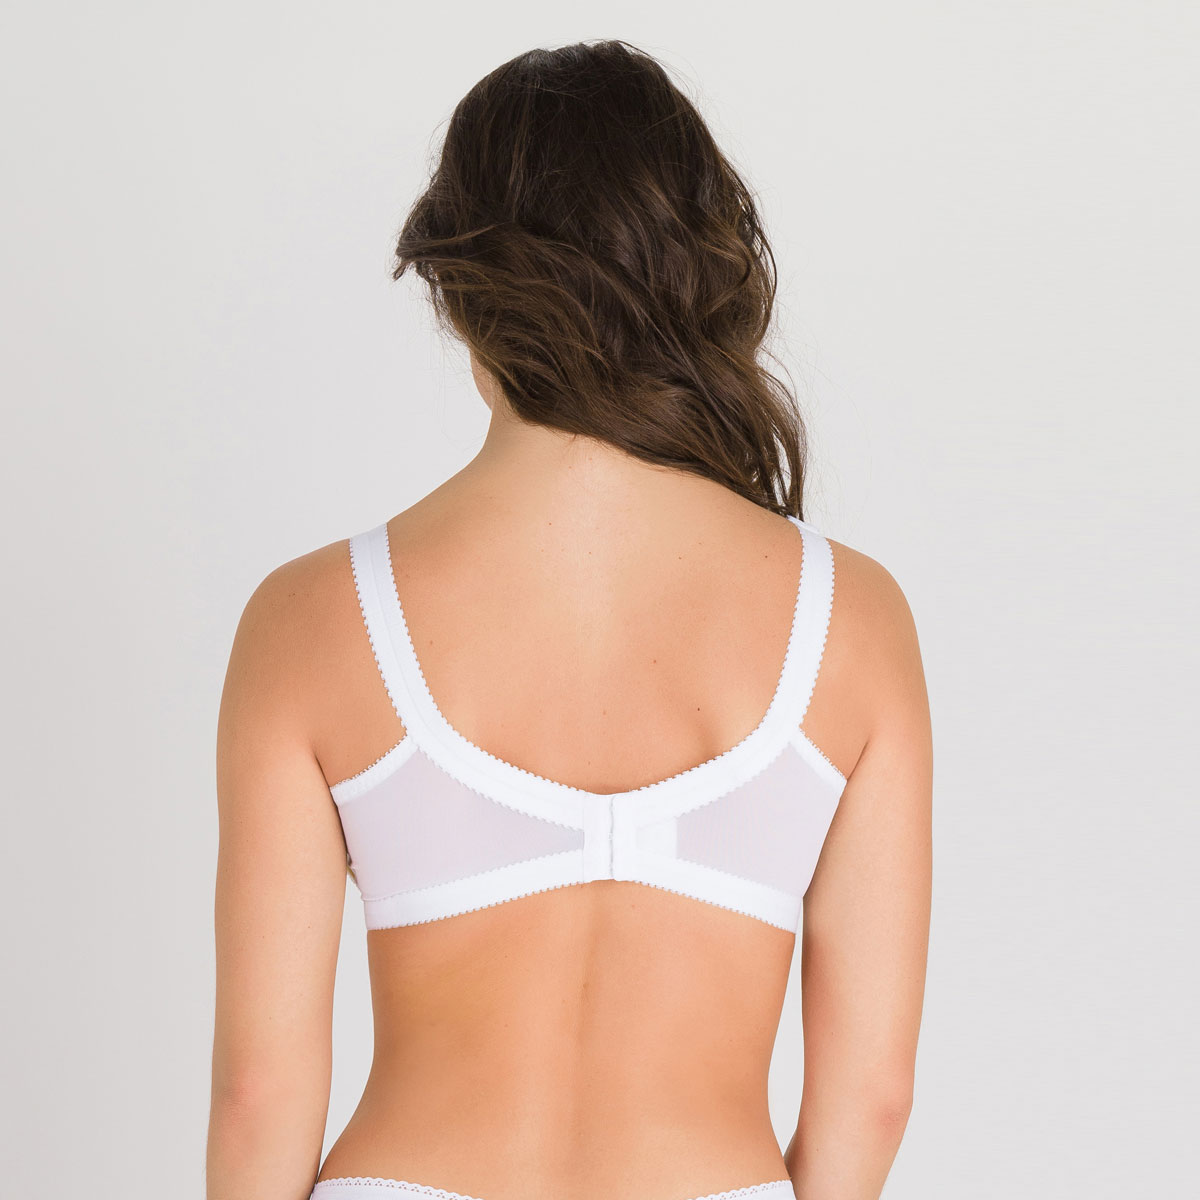 Non-wired Bra in White – Cross Your Heart 152, , PLAYTEX